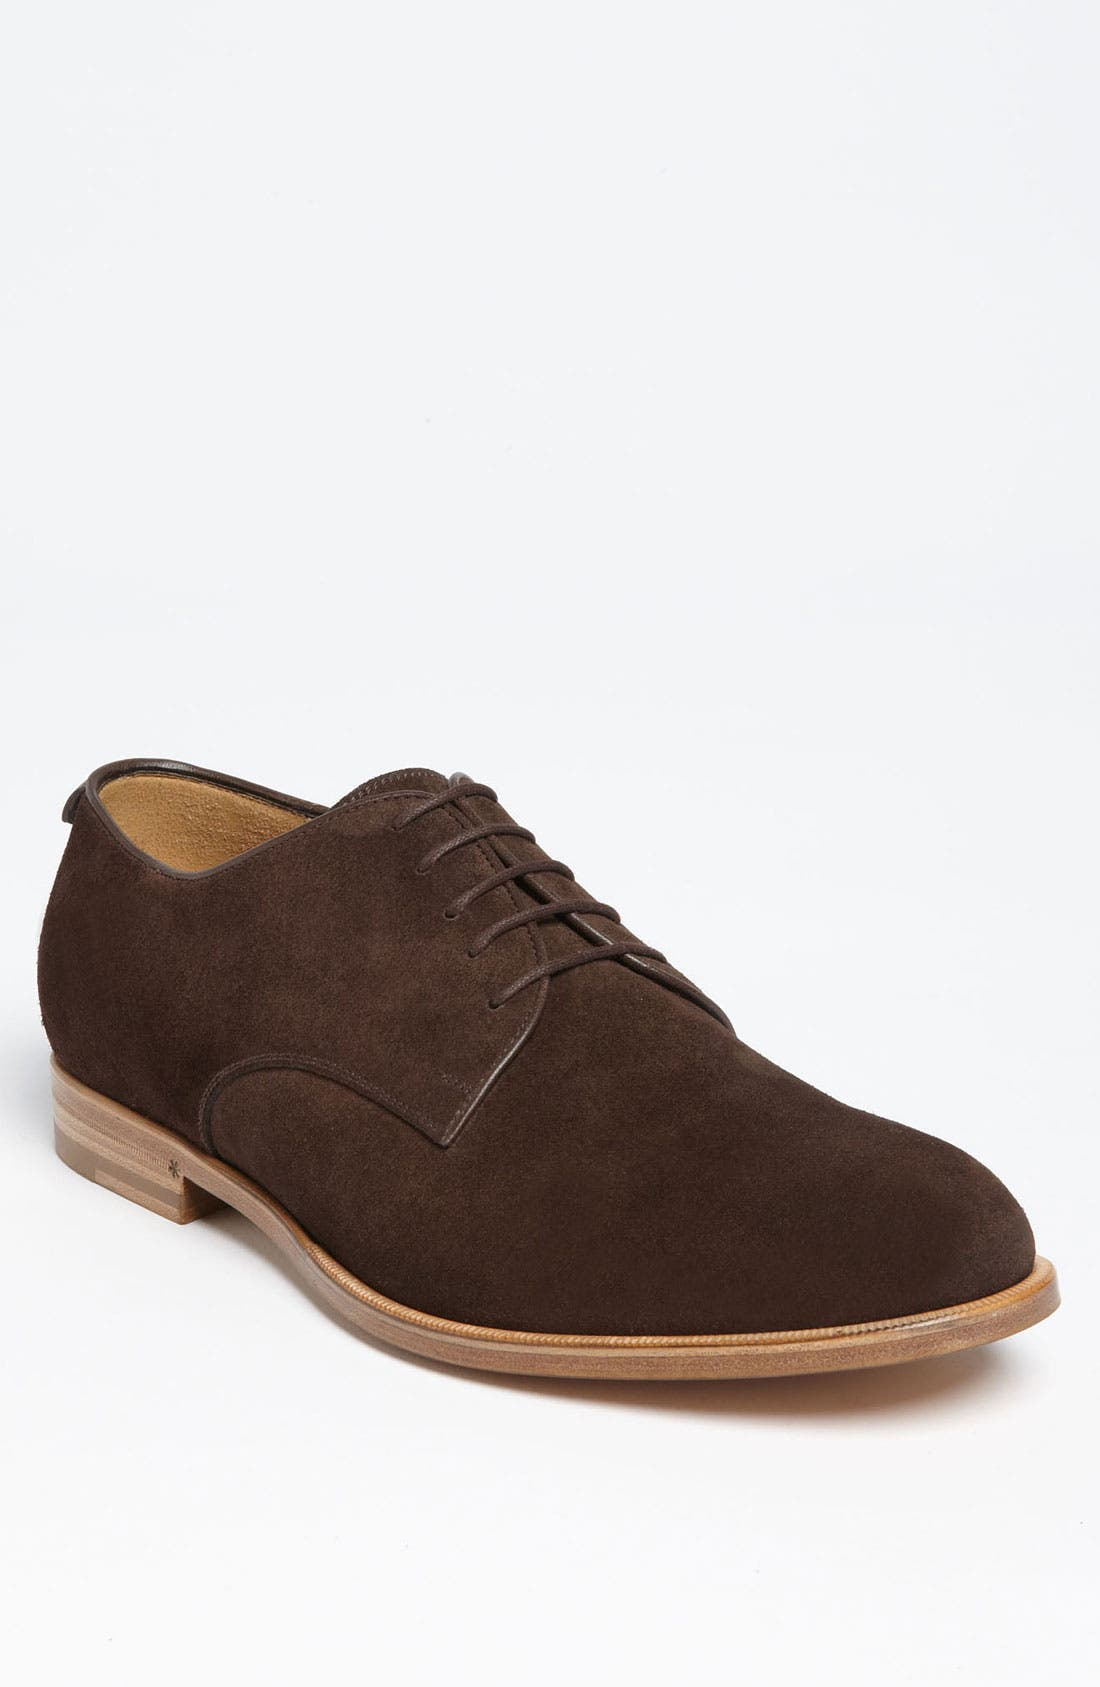 Main Image - Gucci 'Clerck' Buck Shoe